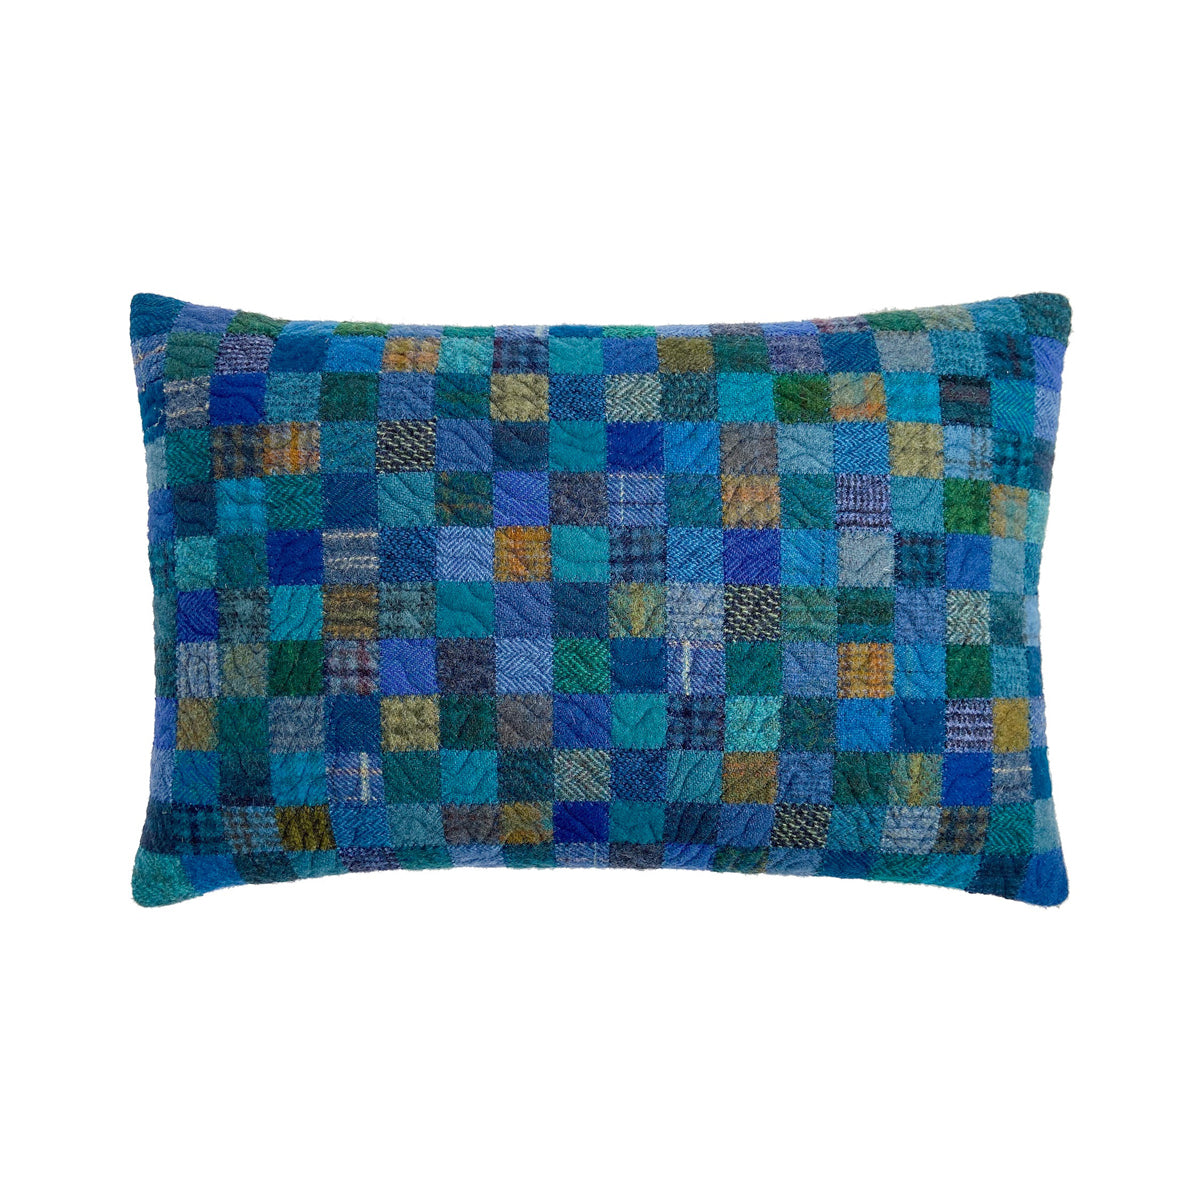 NE 41st Avenue Cushion • 12x18 K